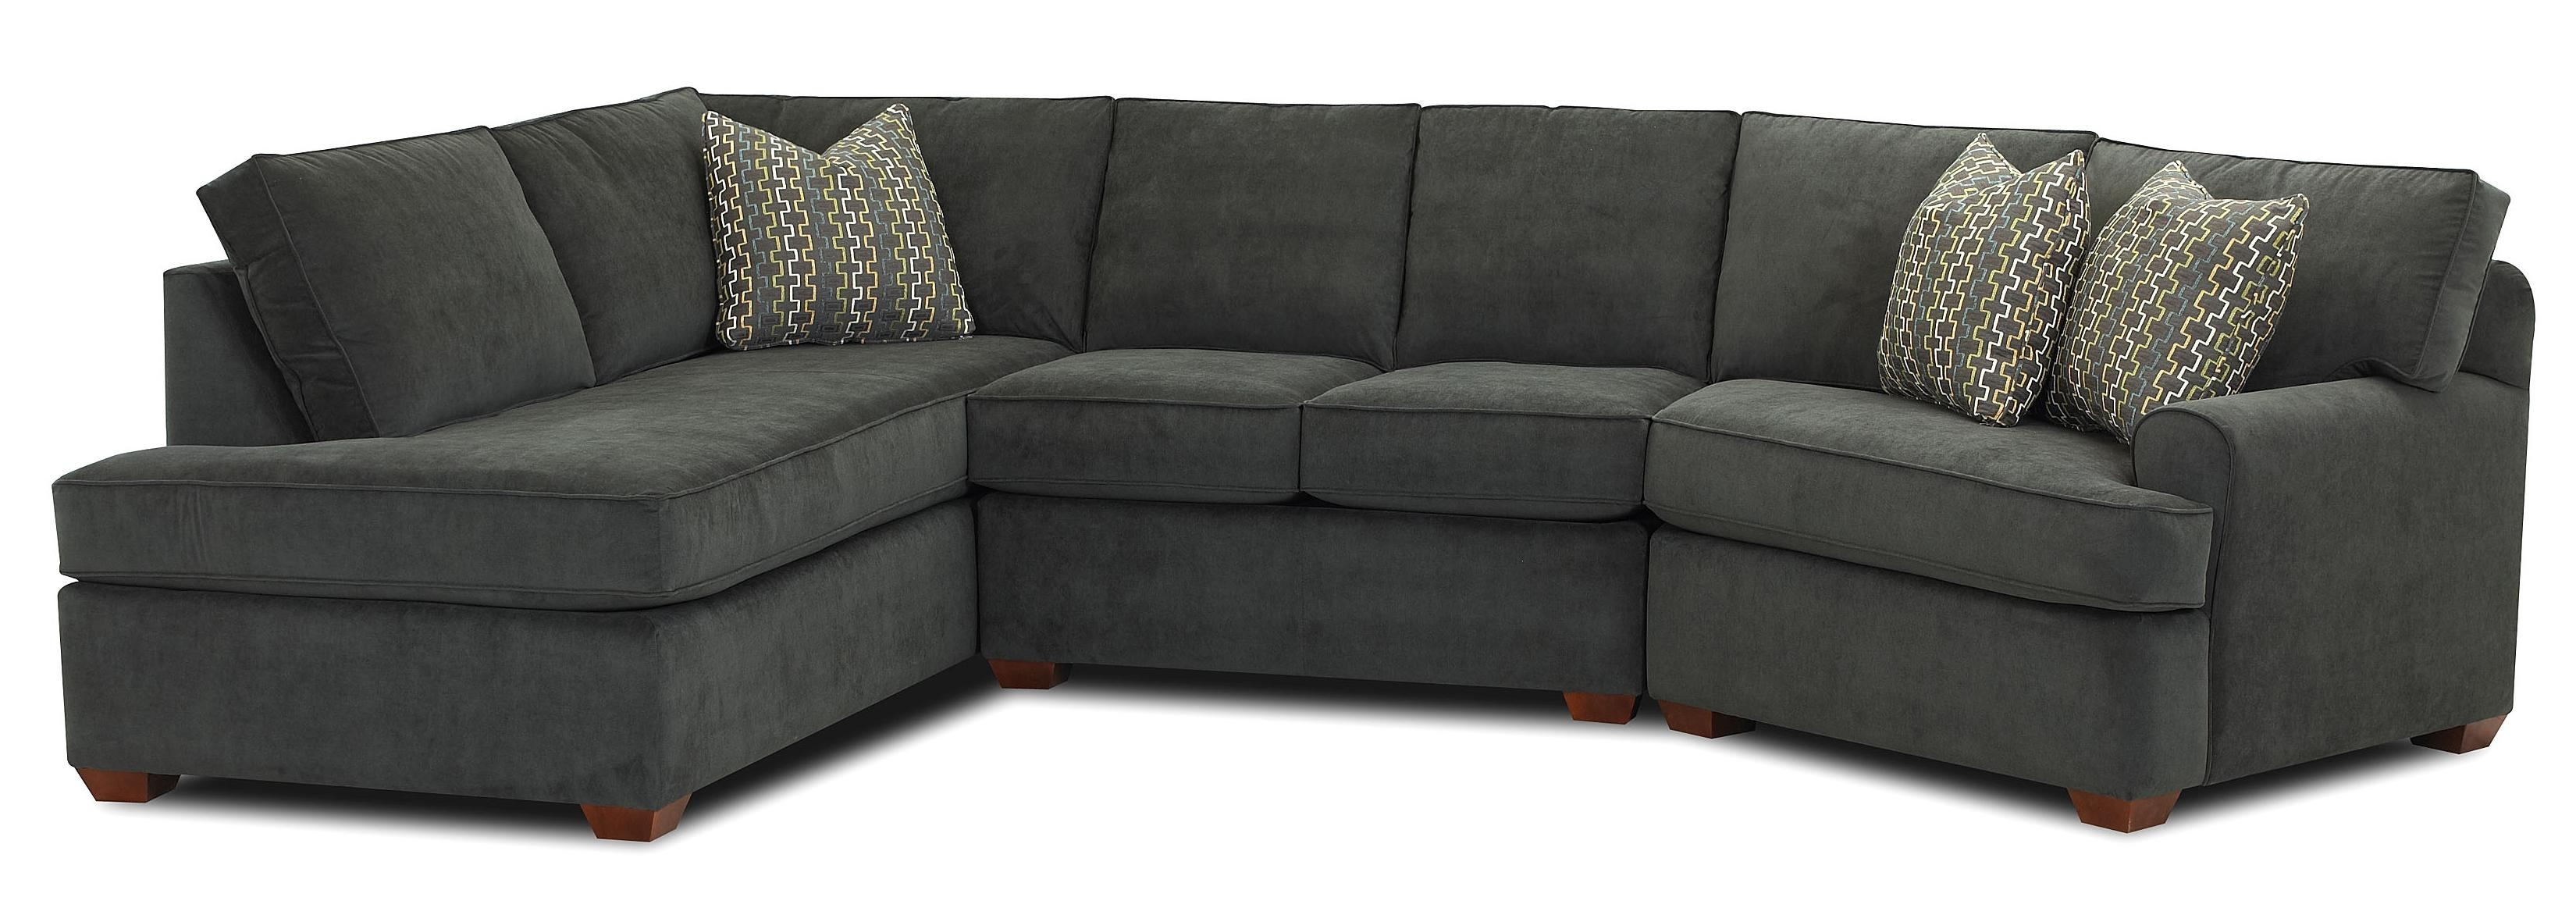 Sectional Sofa With Left Facing Sofa Chaise | Redecoration Project Intended For Nova Scotia Sectional Sofas (View 3 of 10)